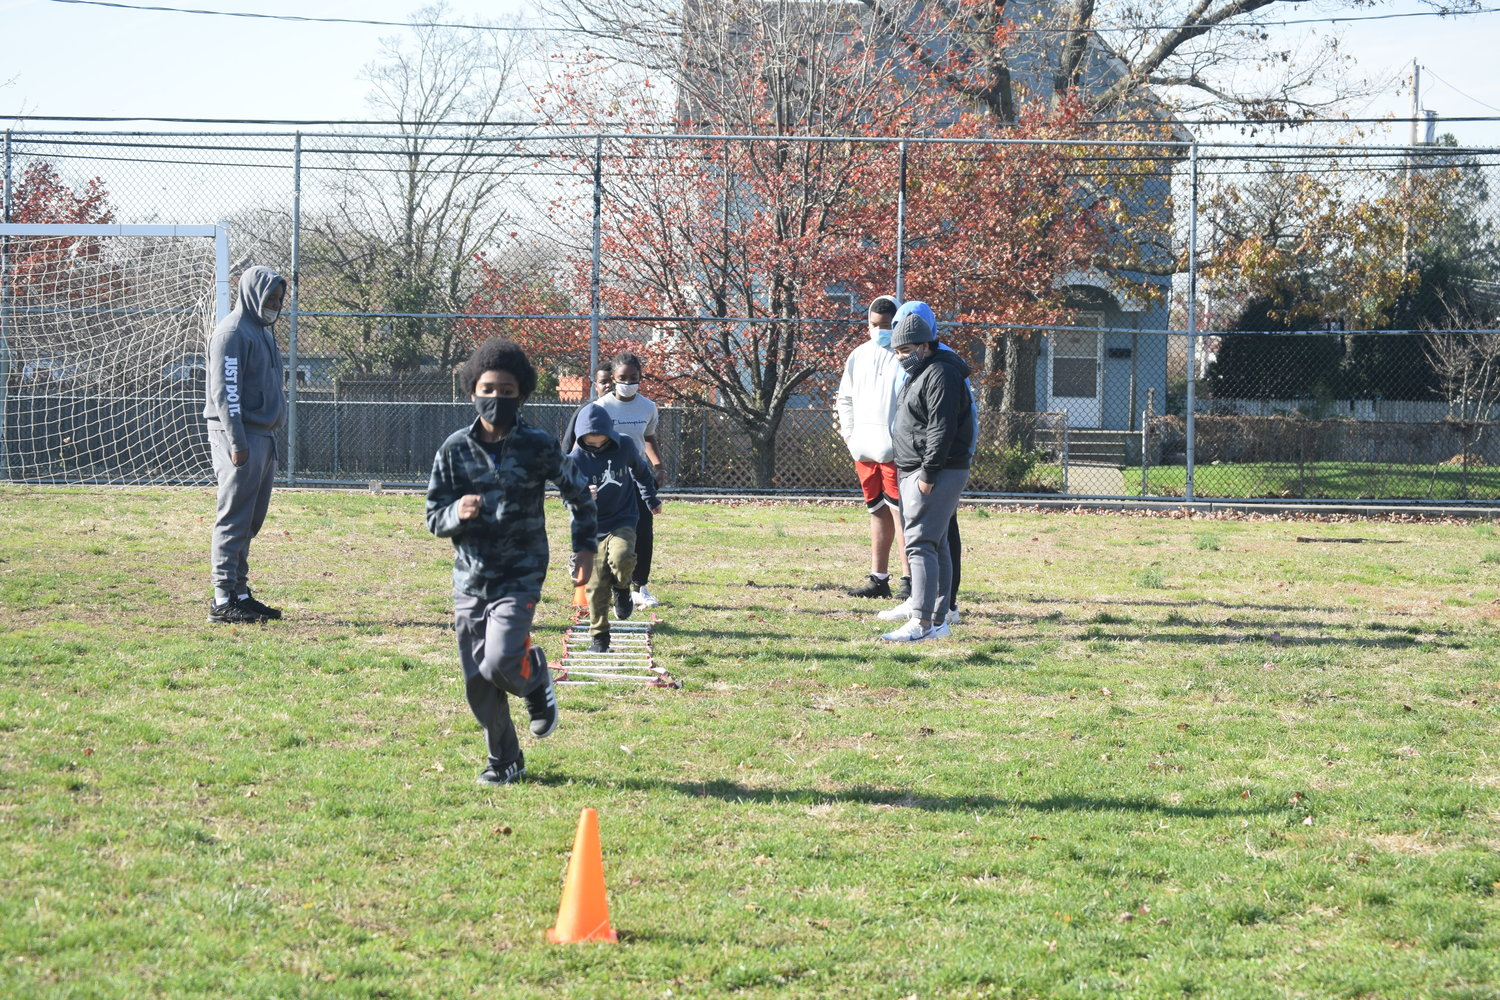 Tristan Primer ran through one of the agility drills at the youth football clinic at the Five Towns Community Center in Lawrence on Nov. 21.